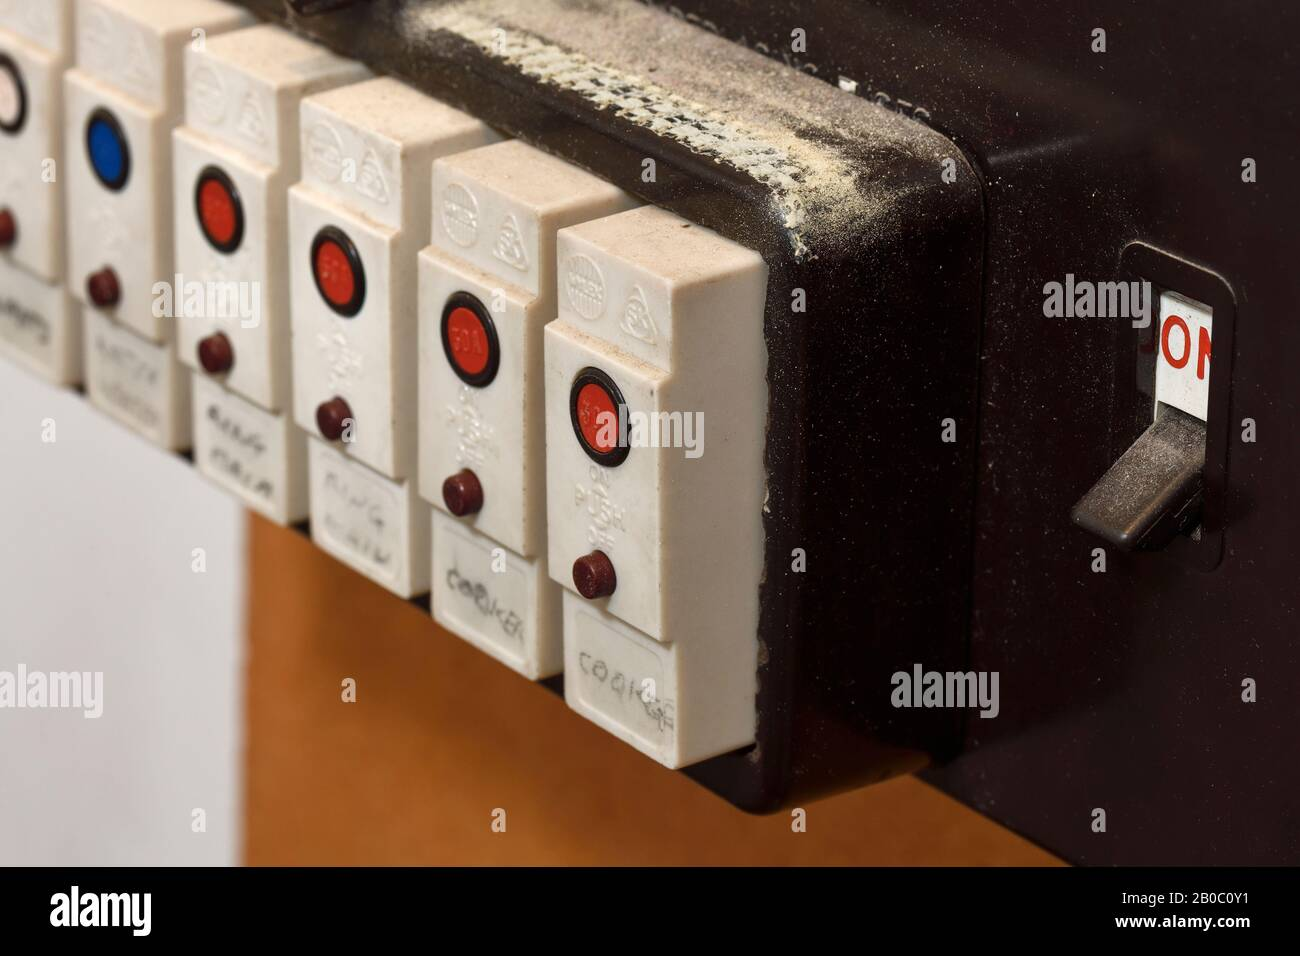 old fuses fuse box high resolution stock photography and images - alamy  alamy